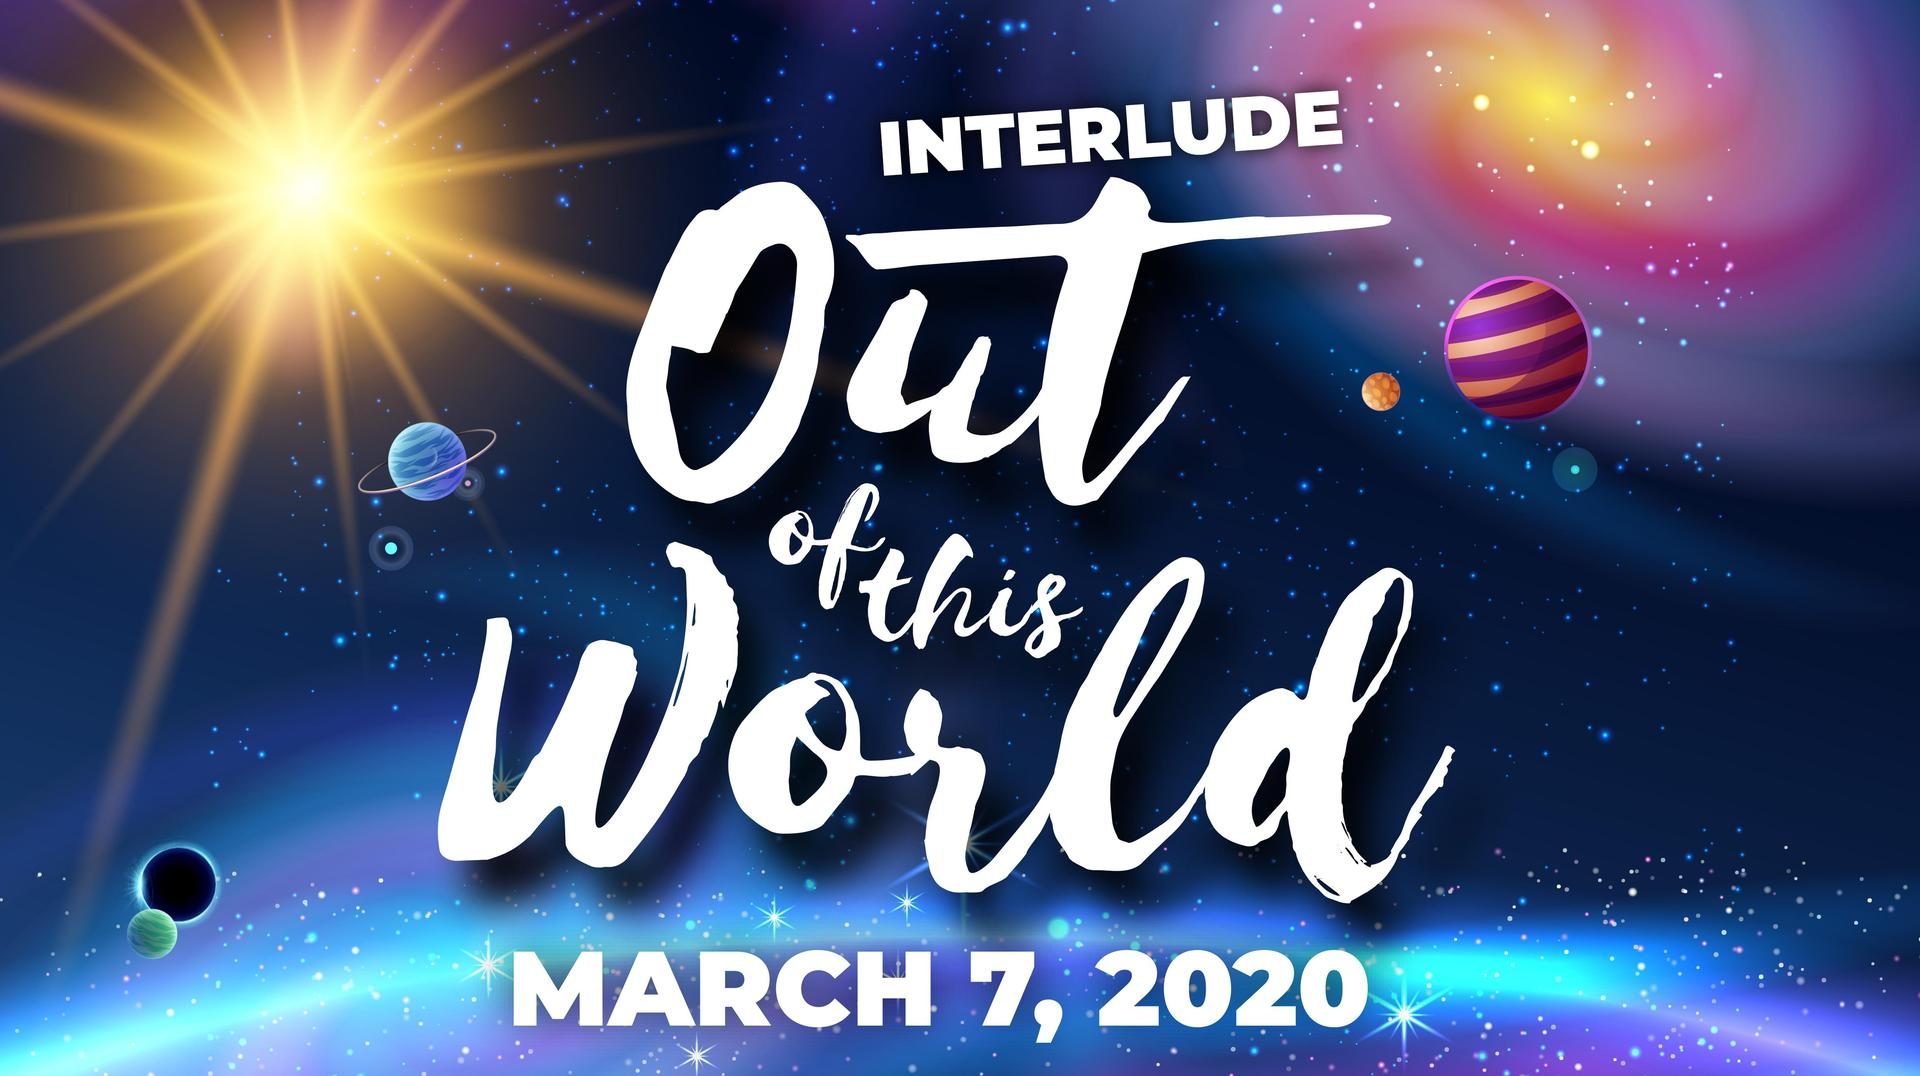 Interlude-2020-Theme